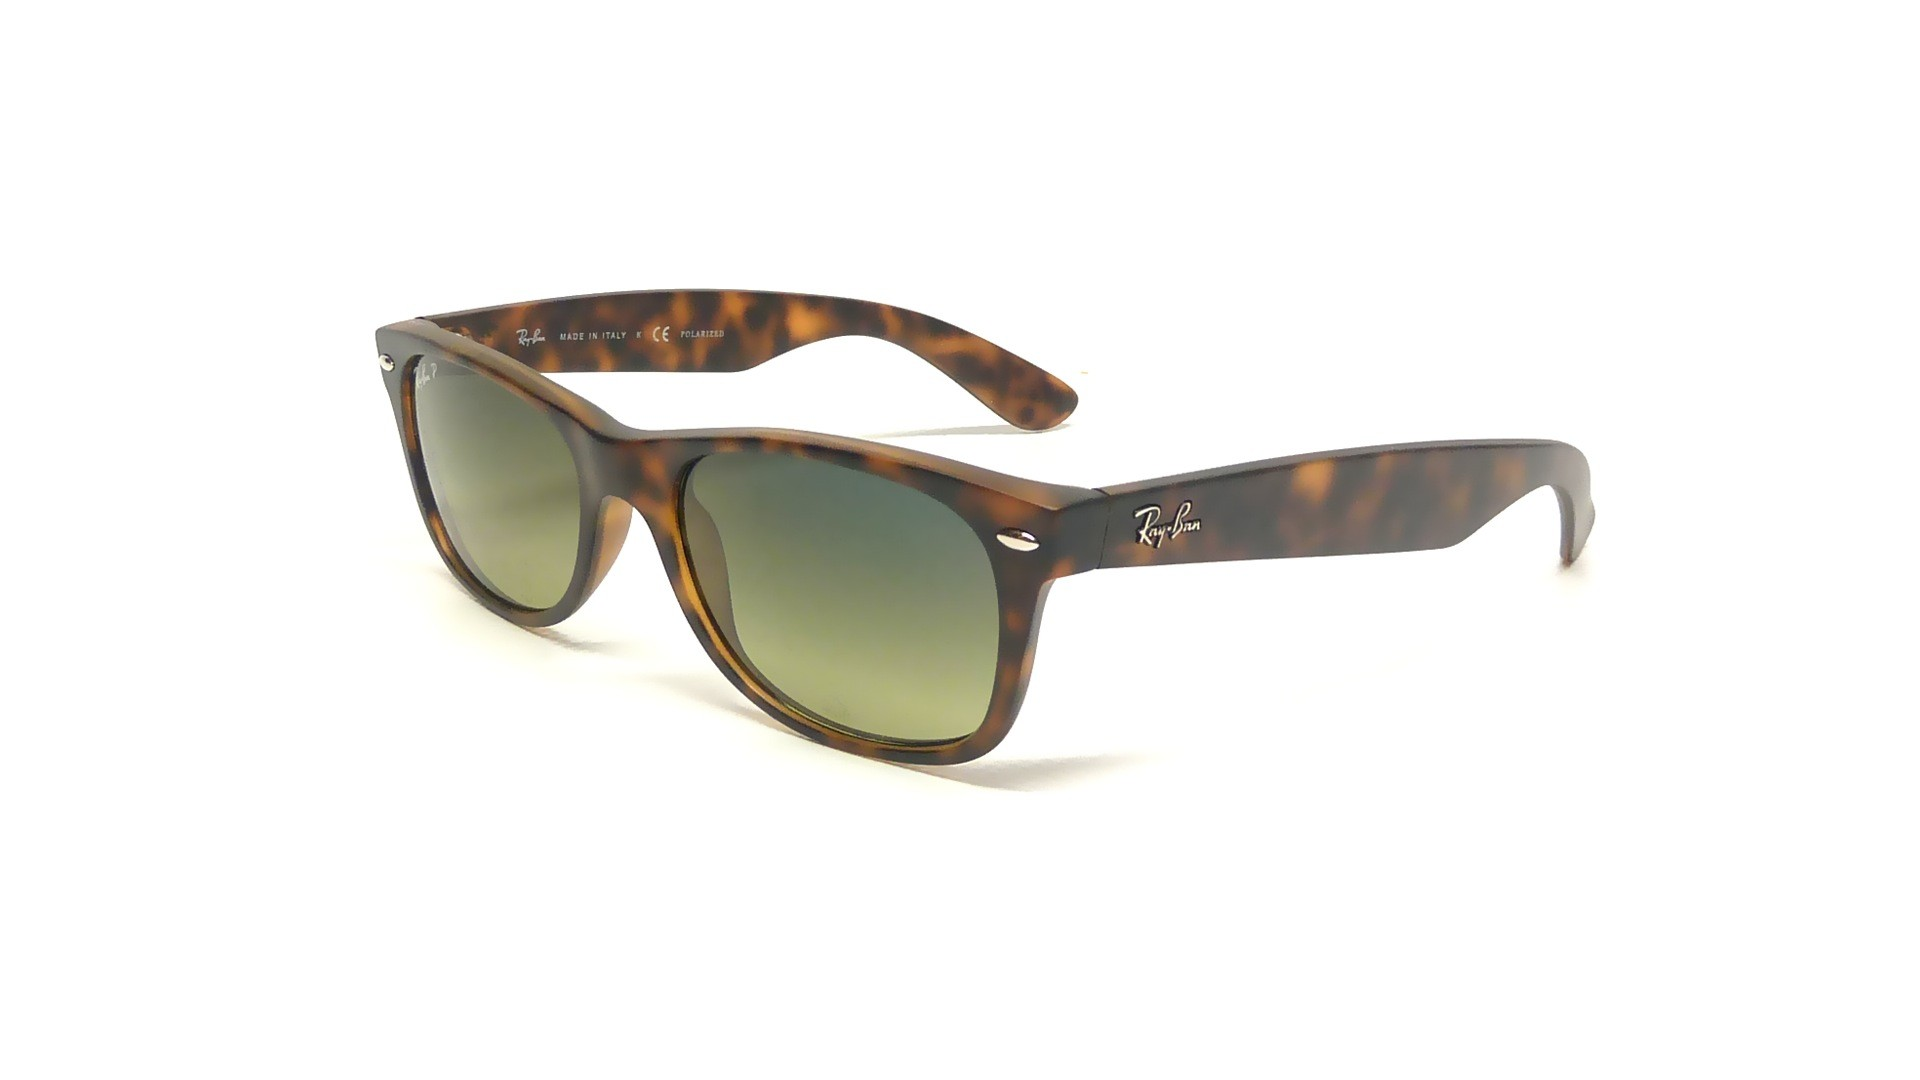 ray ban 2132 new wayfarer  Ban New Wayfarer Tortoise RB2132 894/76 52-18 Polarized